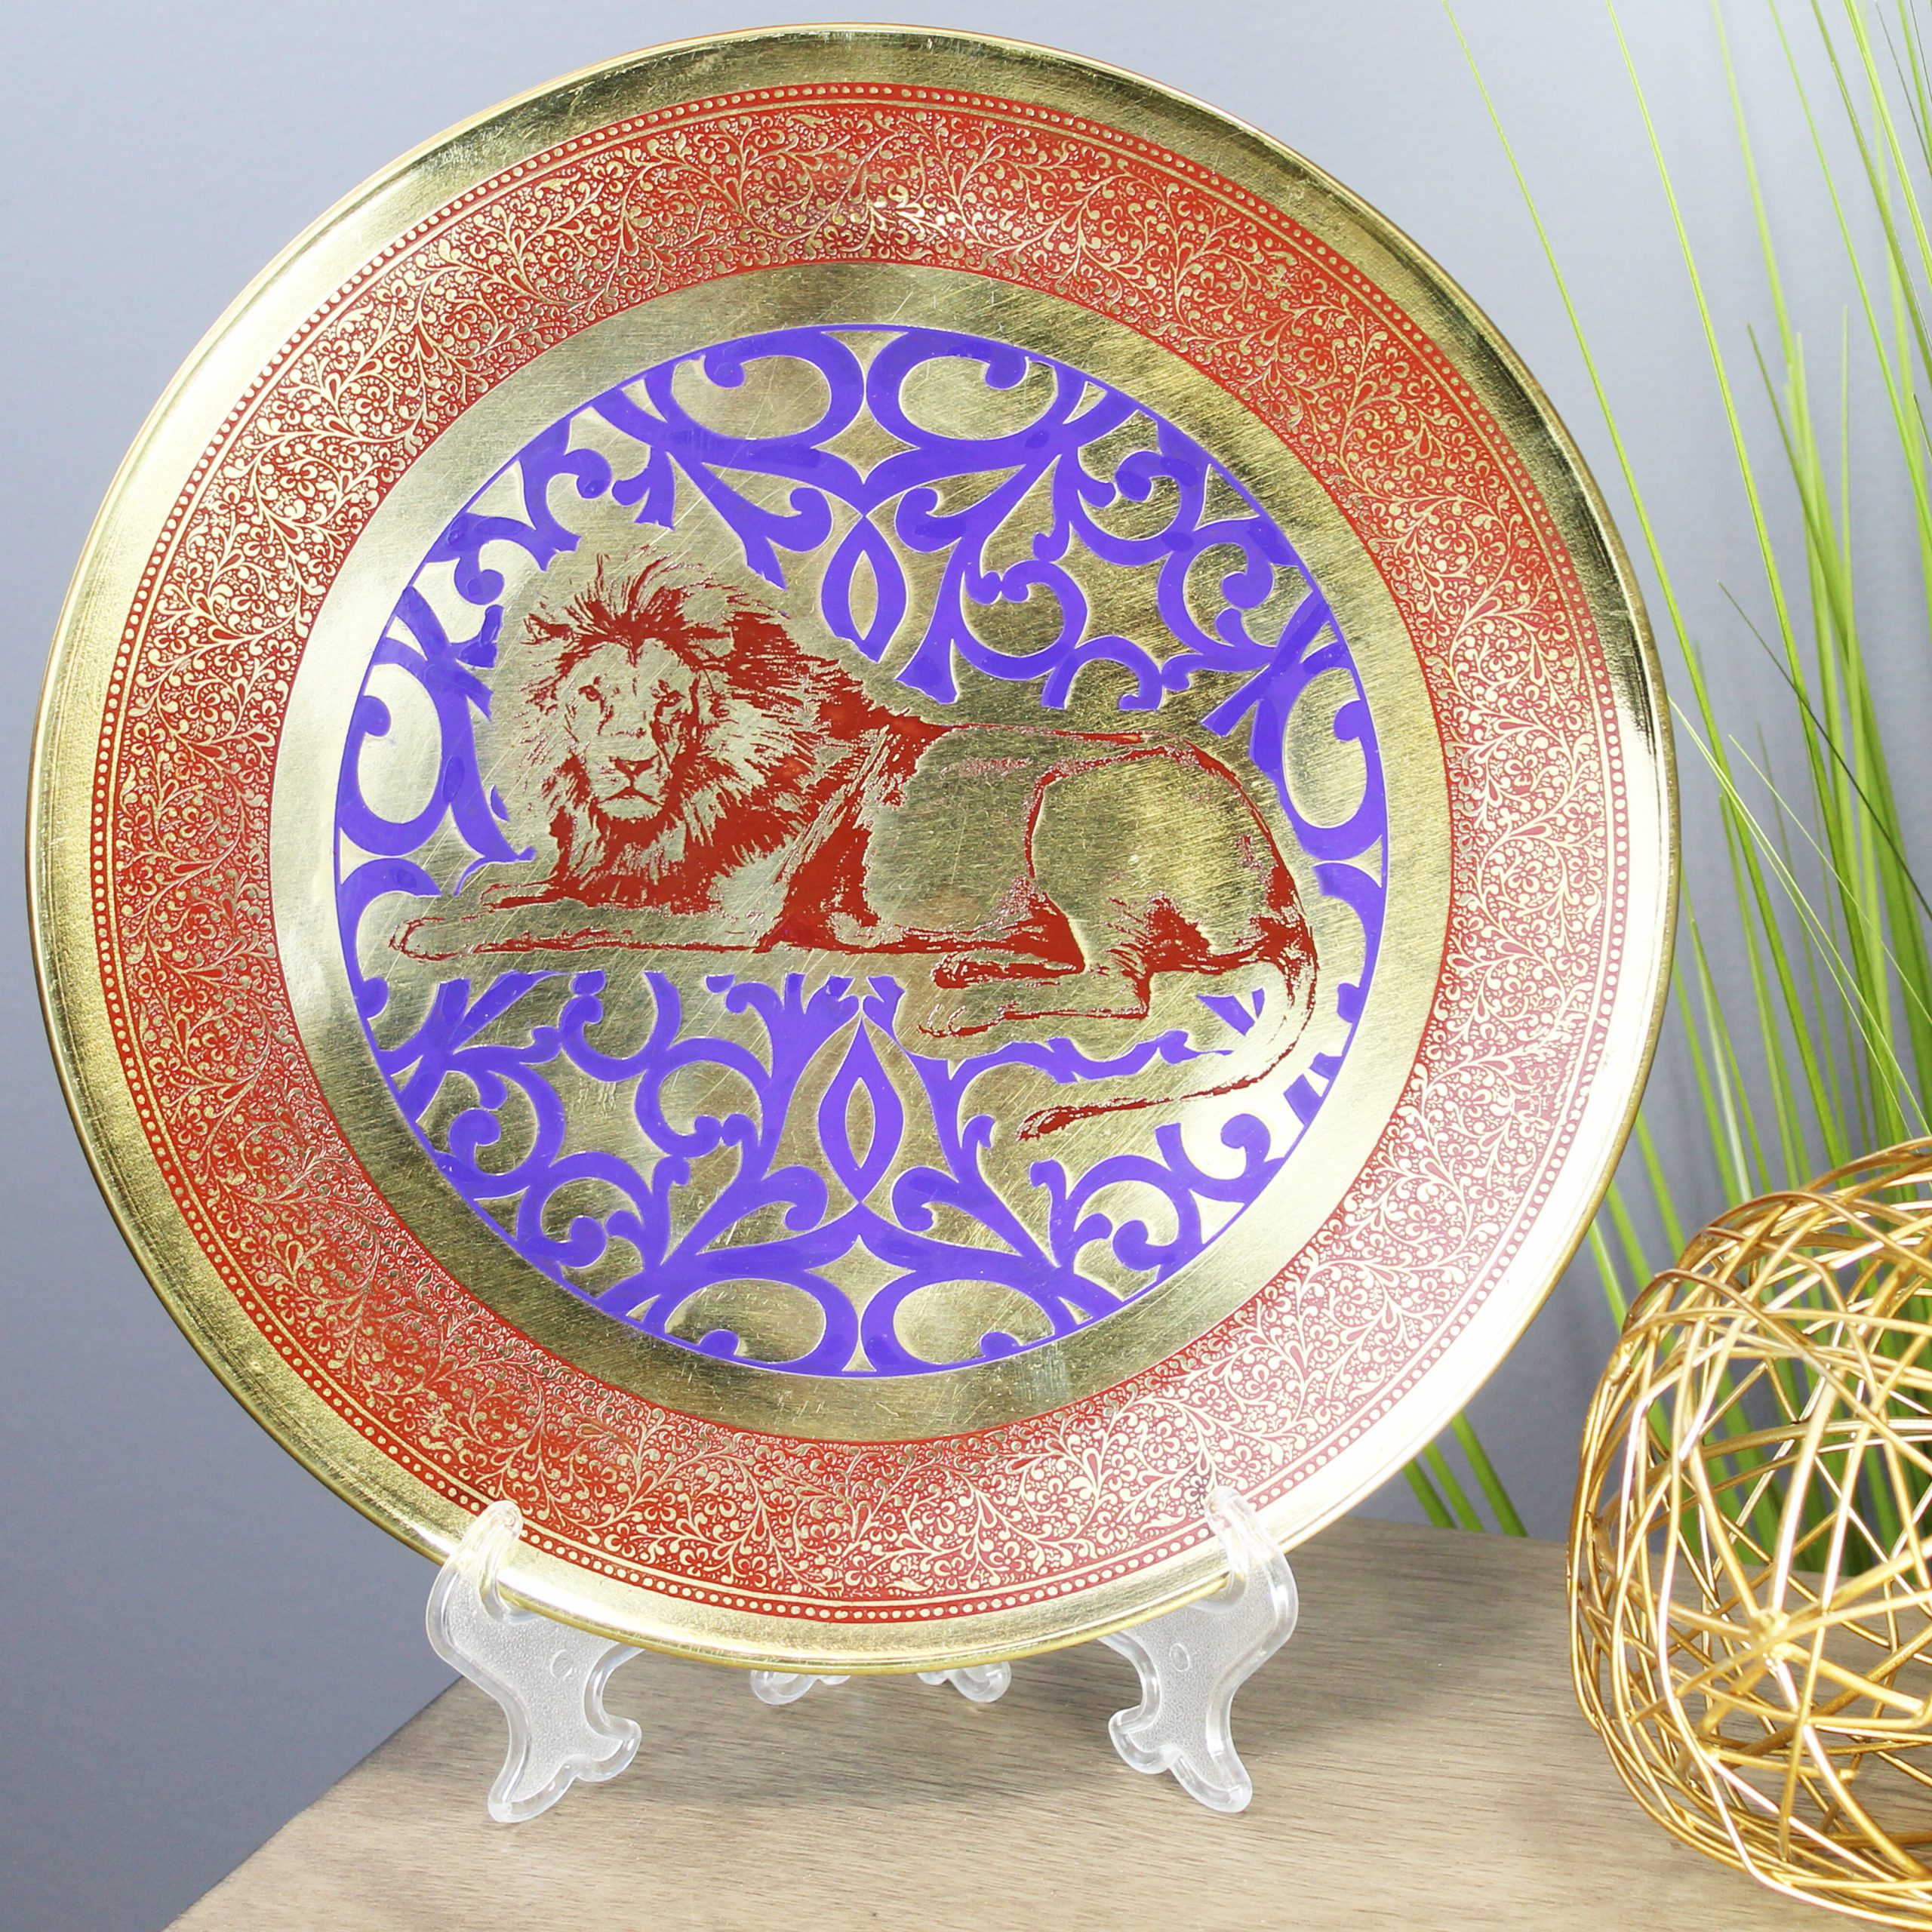 Tioga Metal Decorative Plate Intended For 2020 Floral Plate Wall Décor By World Menagerie (View 9 of 20)